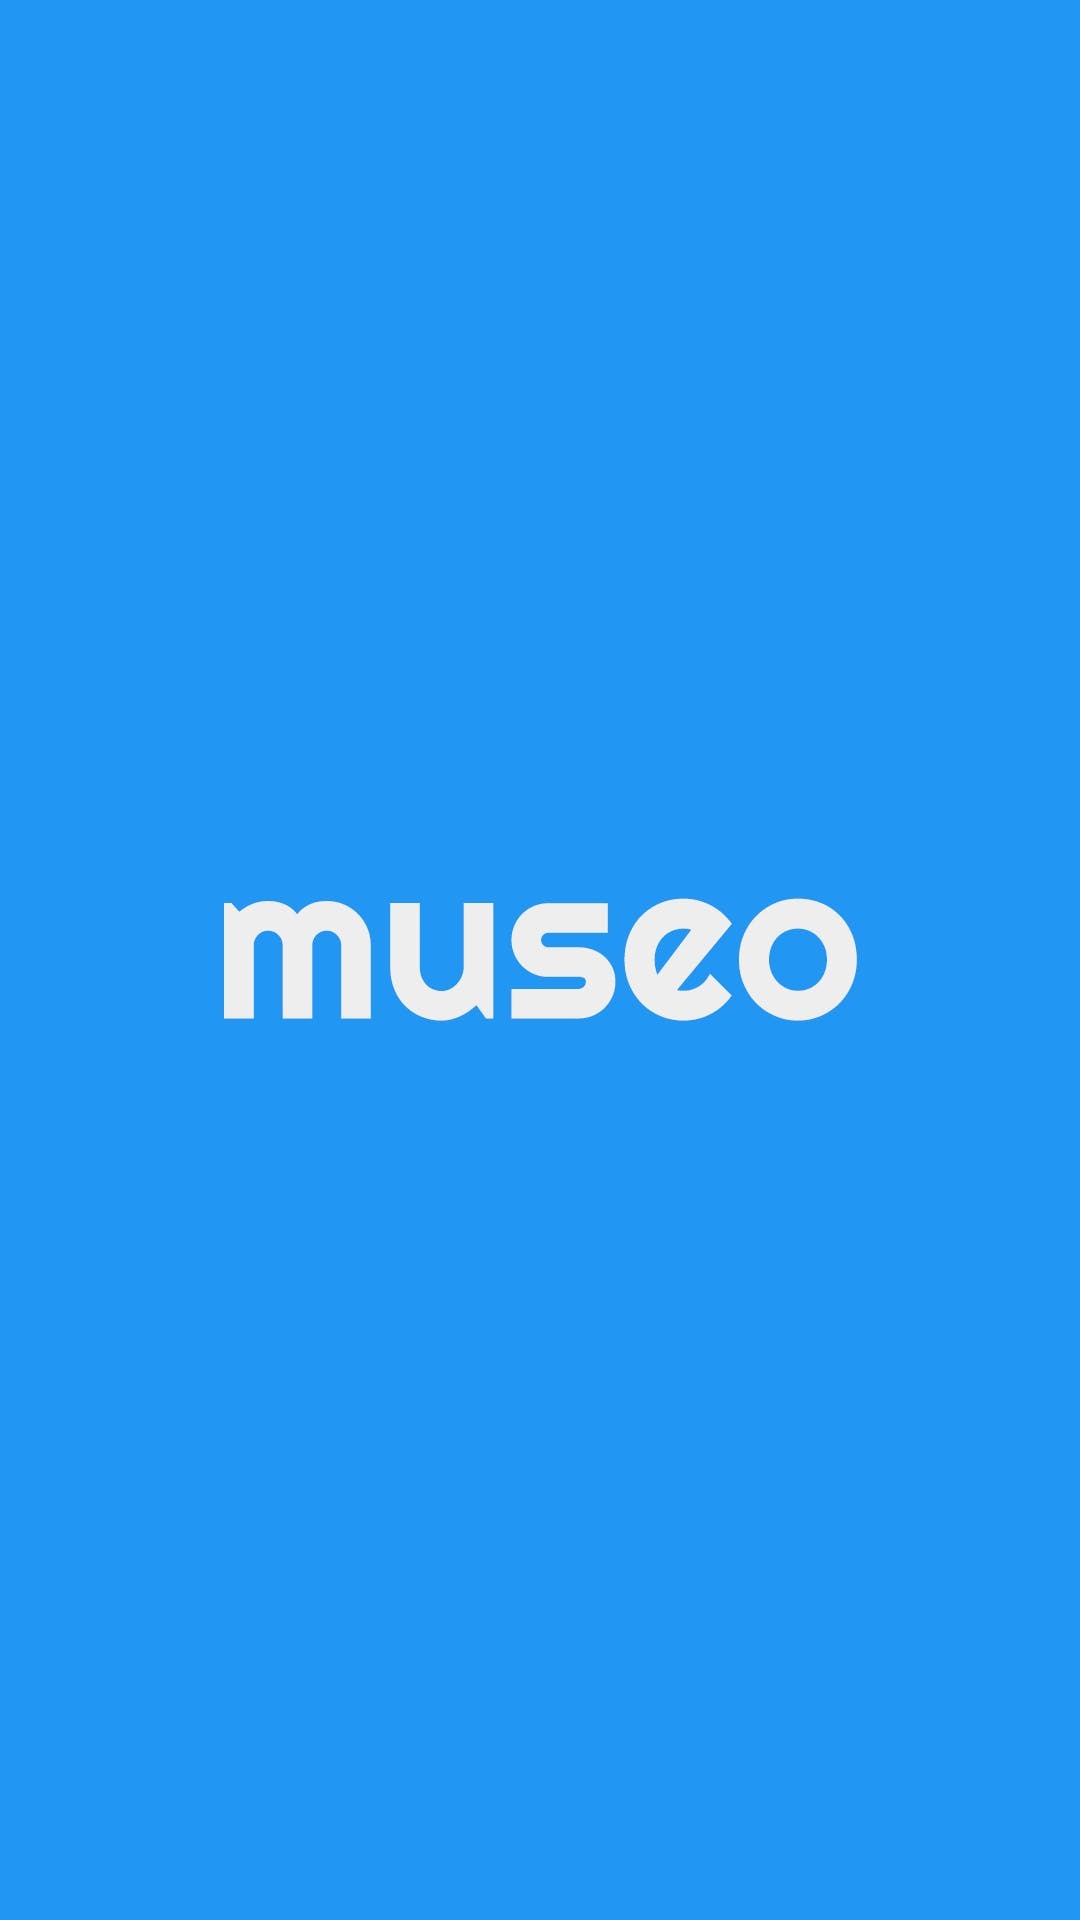 MUSEO - Skeleton Android Prototype